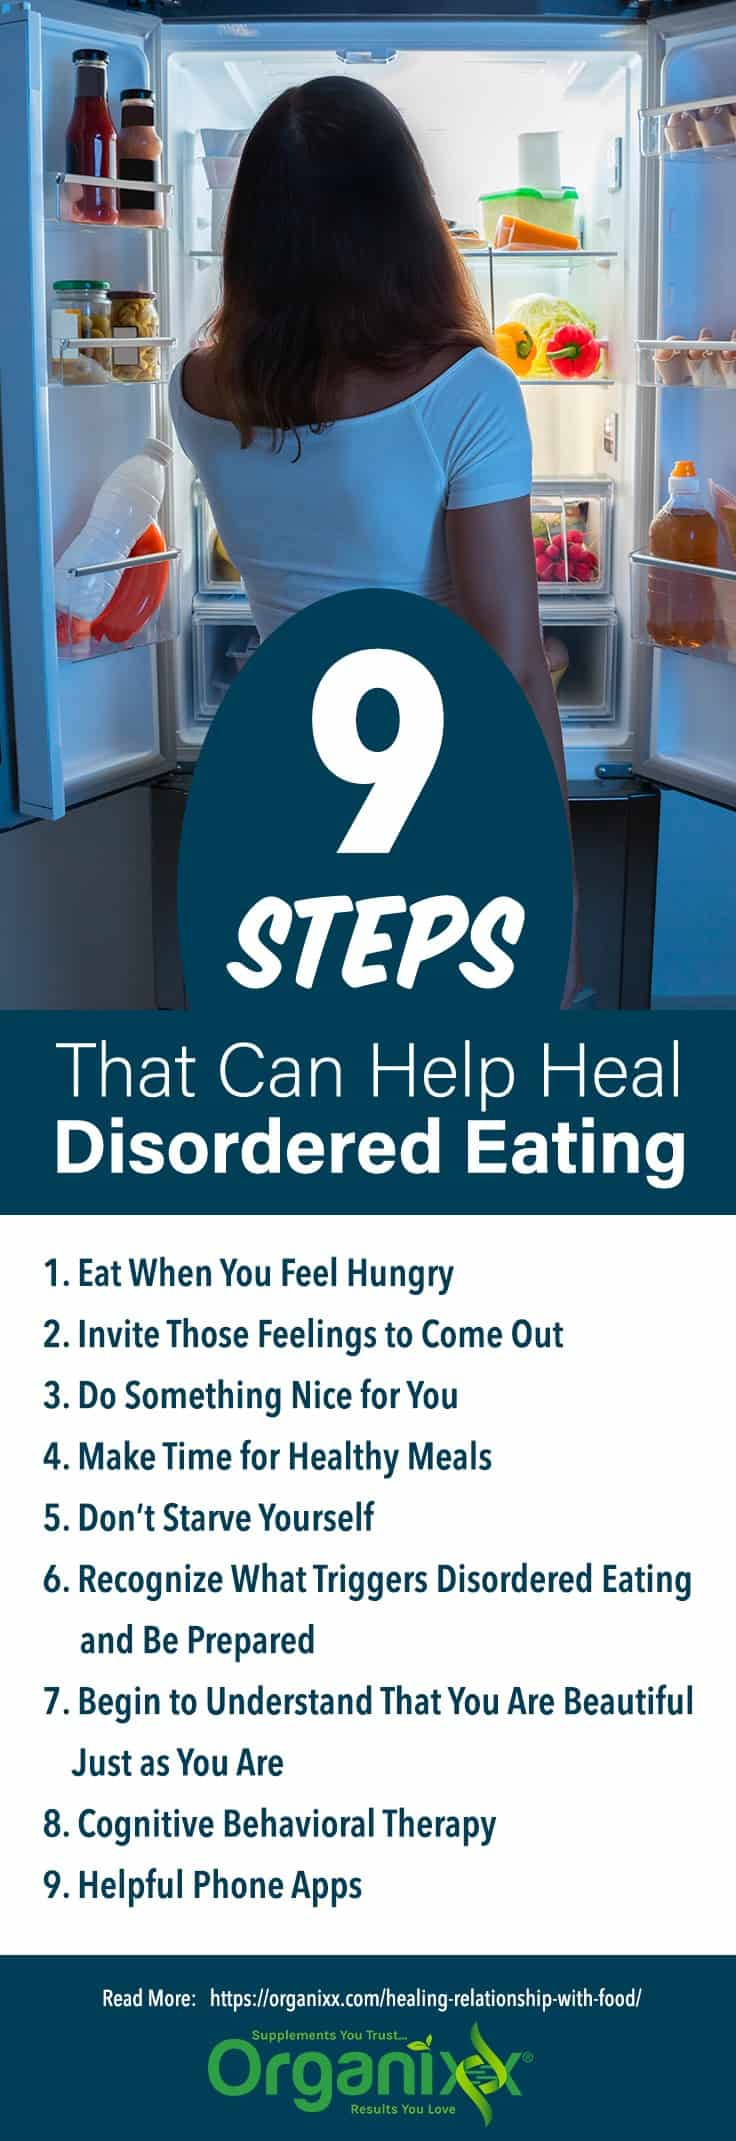 infographic list of tips for healing disordered eating